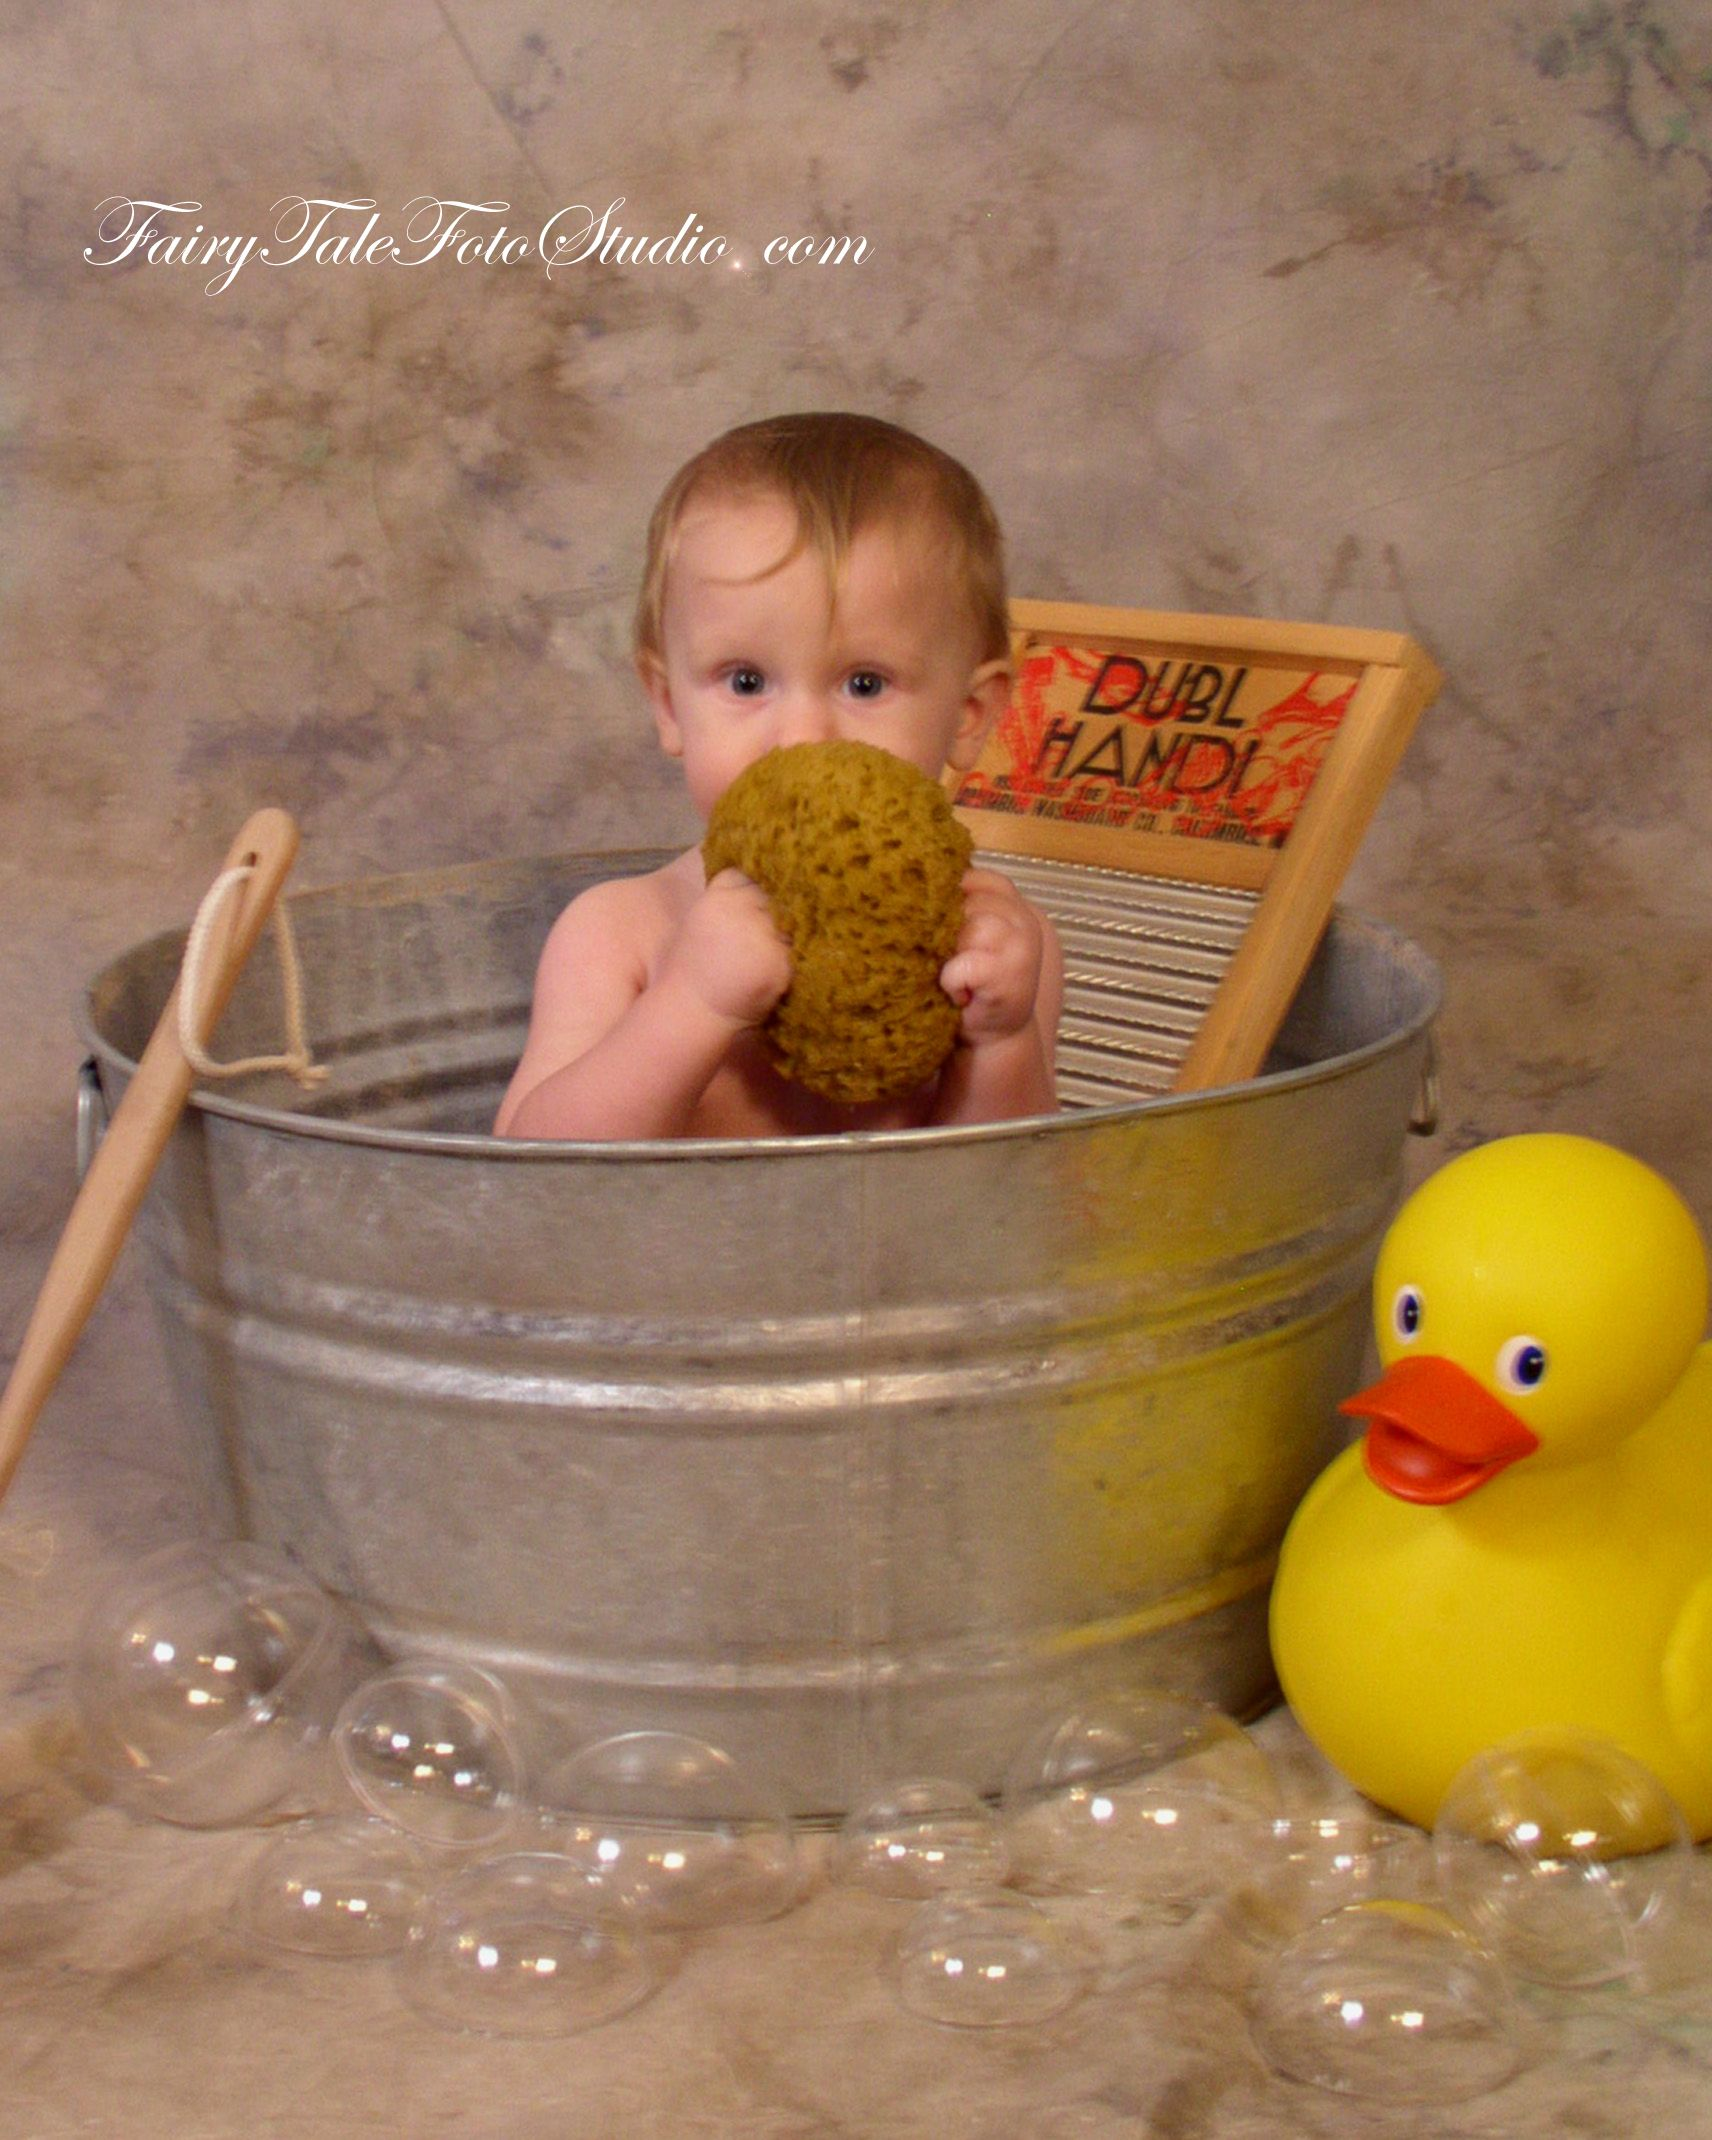 Baby Boy in Old Fashioned Washtub with Washboard and Giant Rubber ...